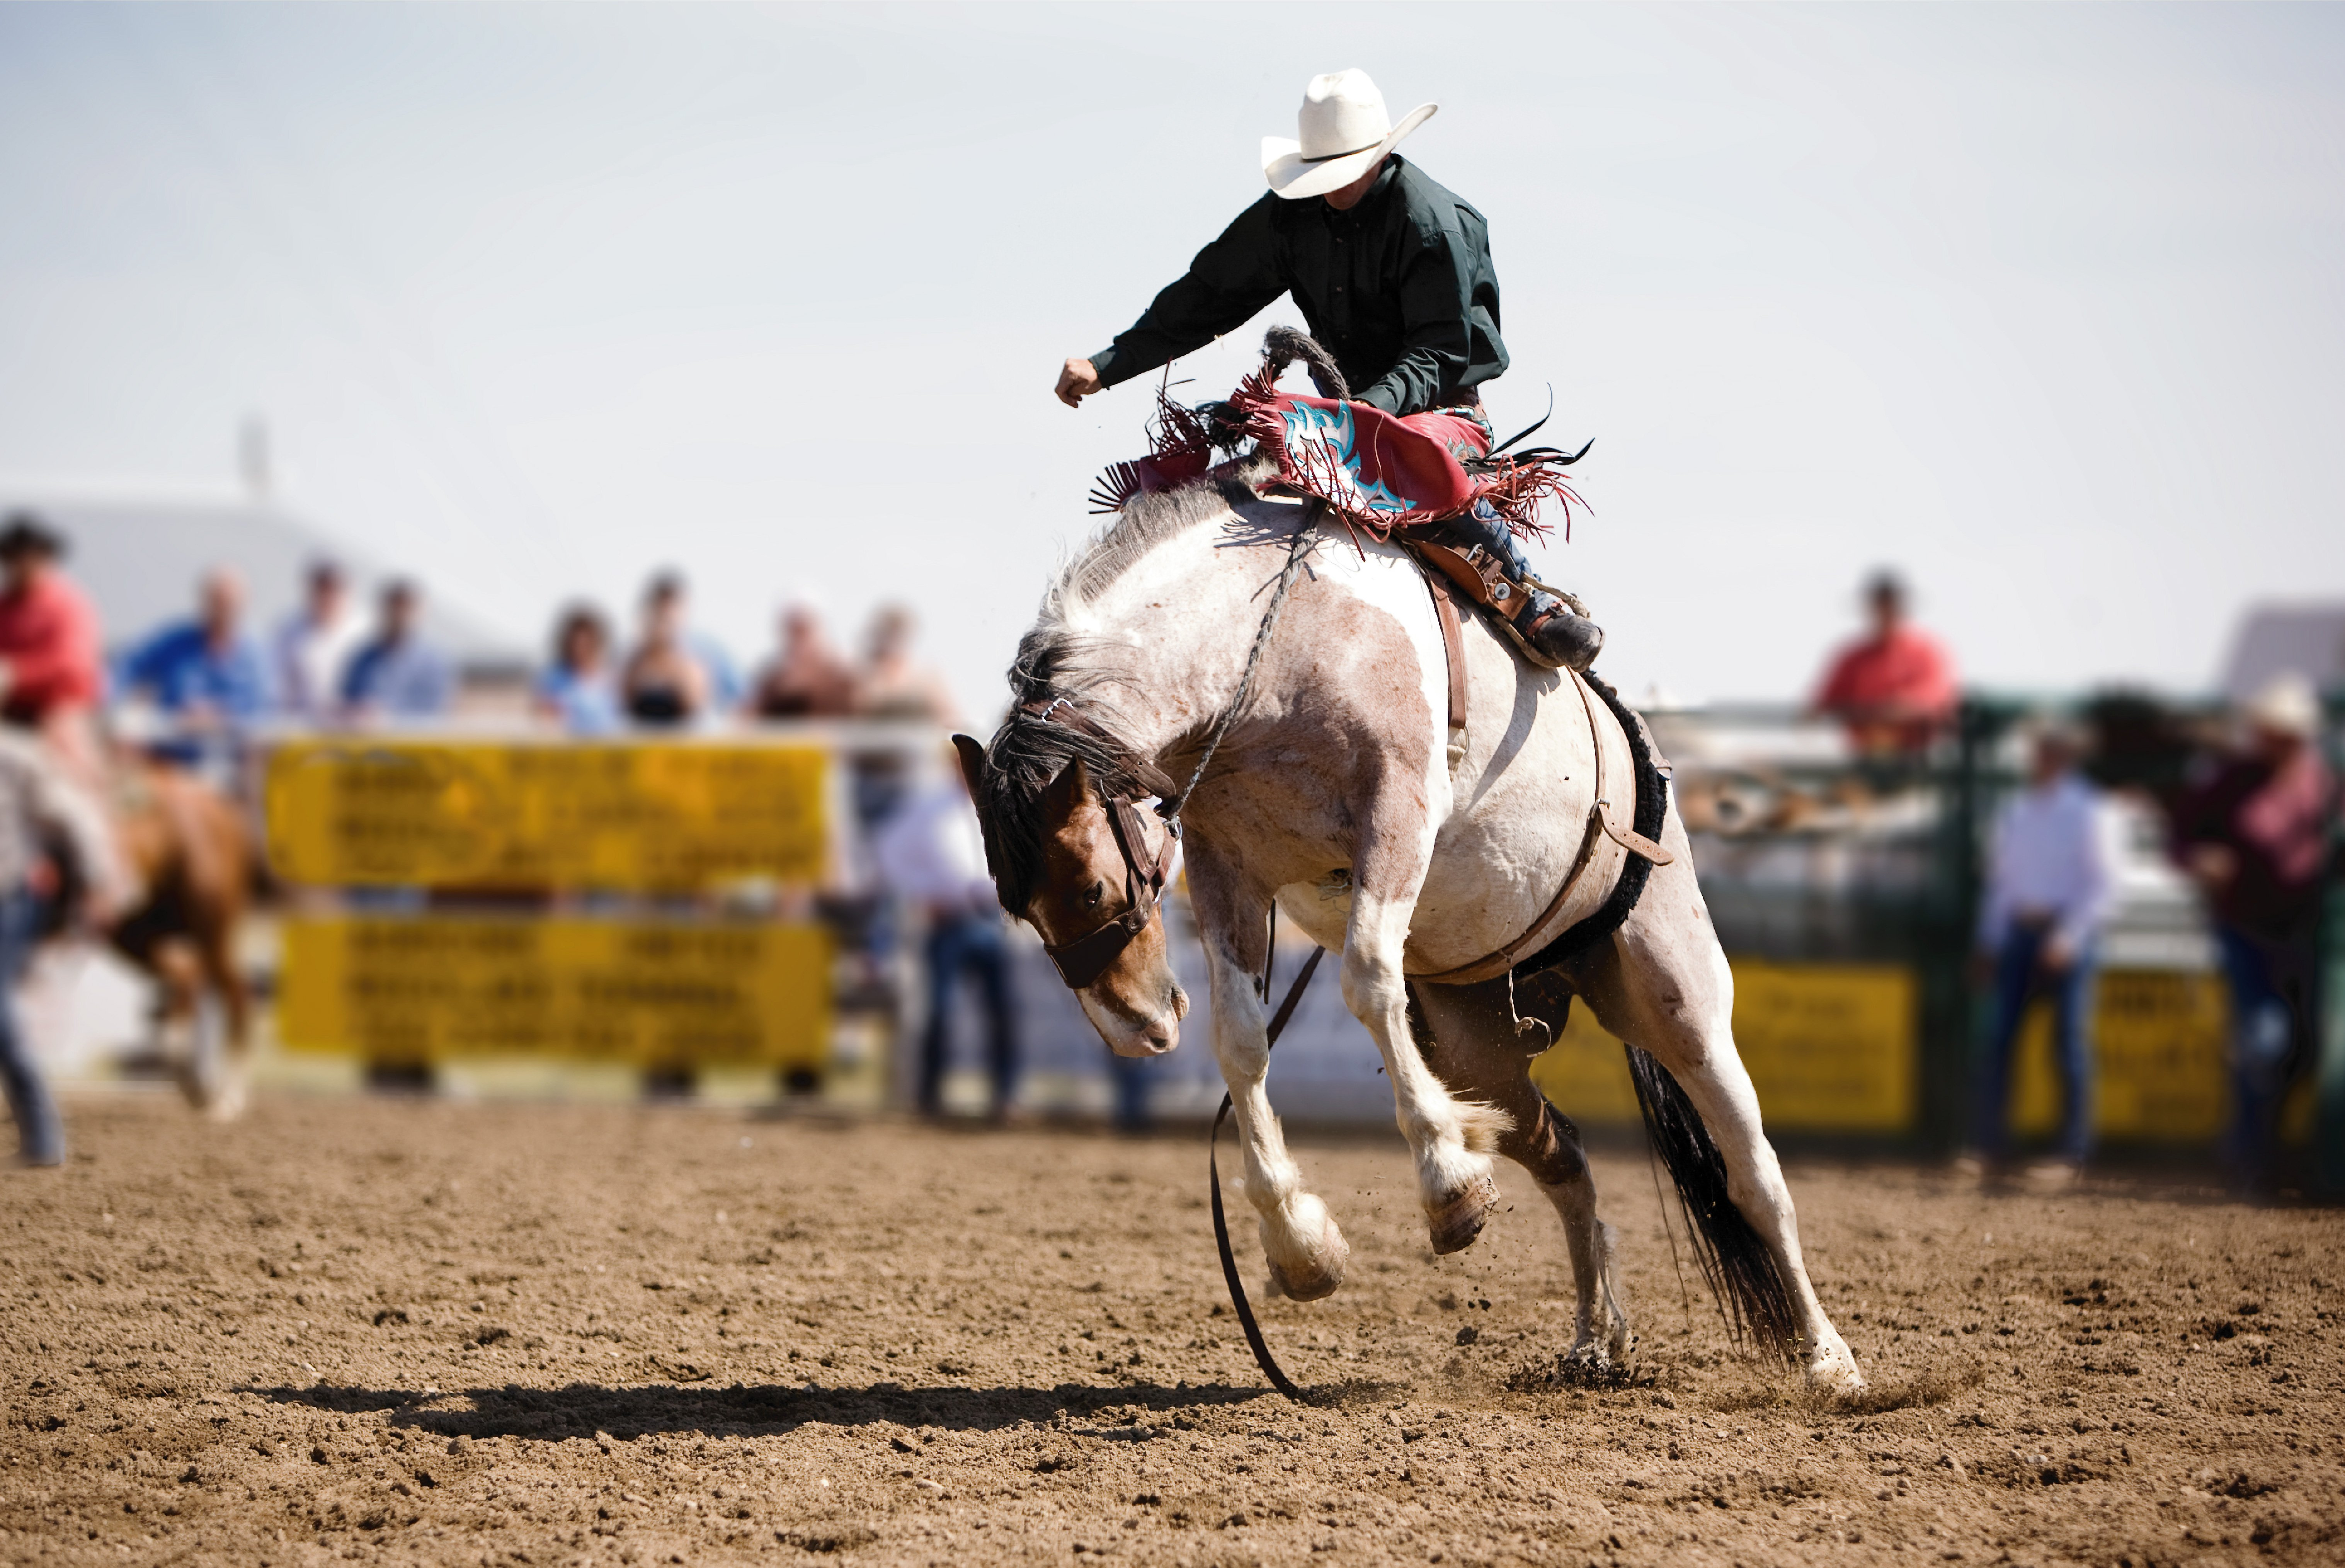 summer rodeo in montana